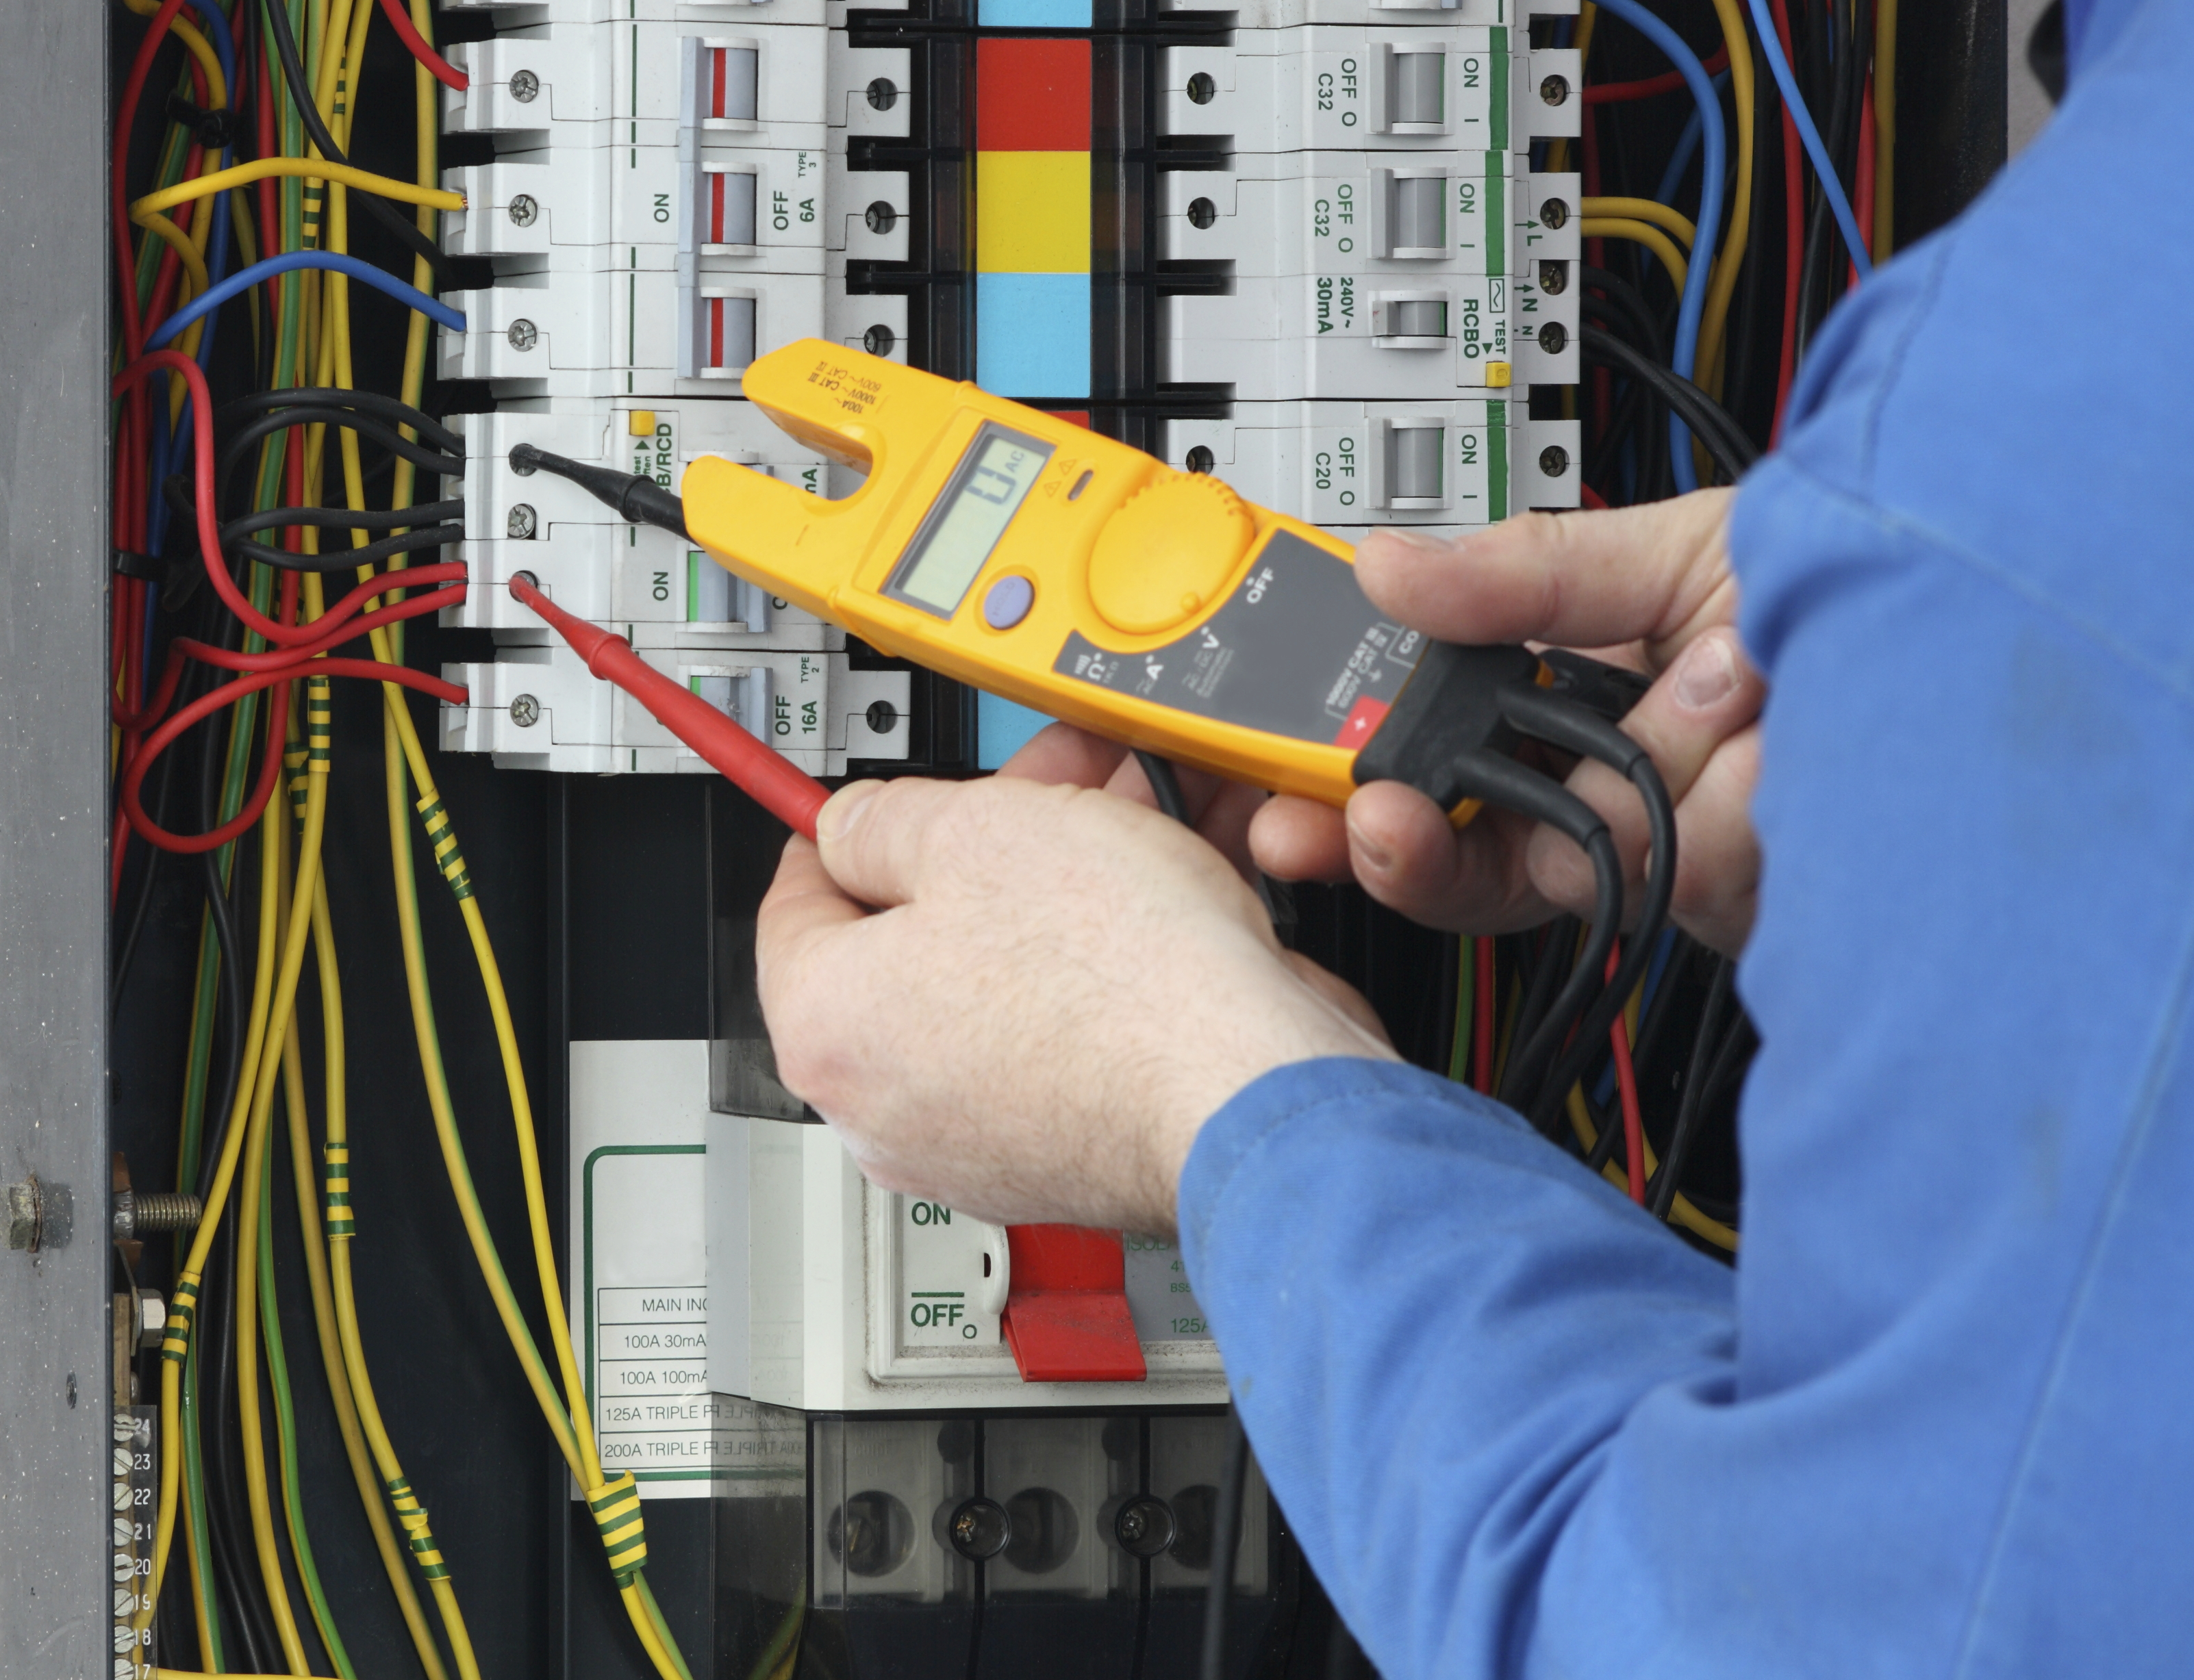 Electrical Wiring Inspections electrical wiring inspections electrical safety inspections excel electrical wiring at reclaimingppi.co